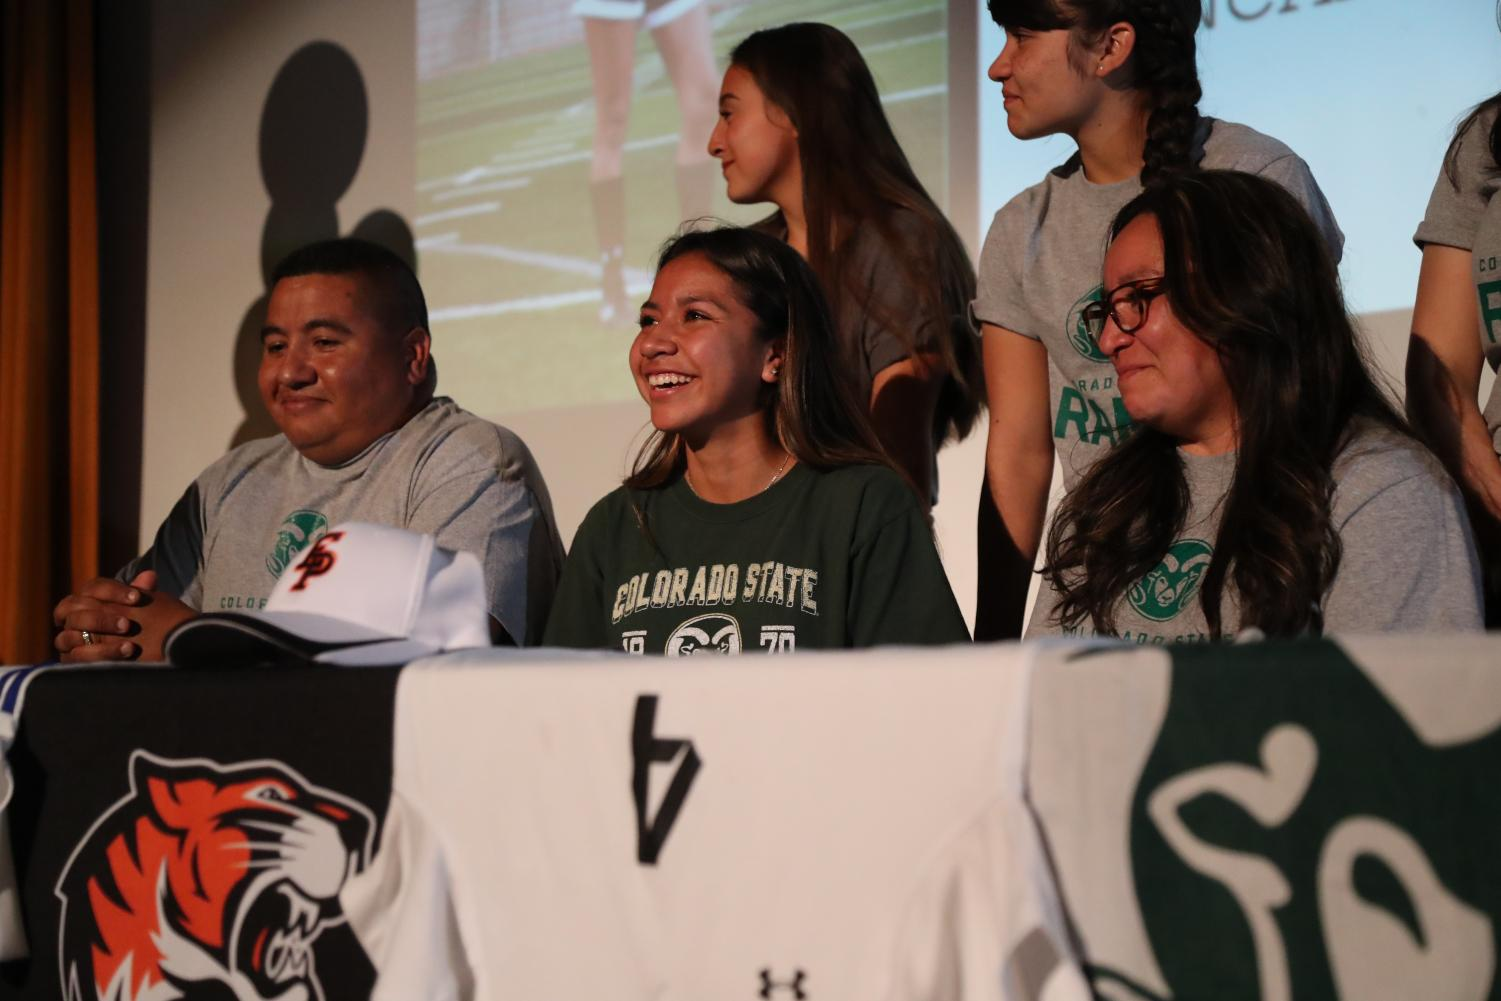 (Feb. 7, 2018) Jackie Balderrama (center) along side her parents looks in excitement as she signed her National Letter of Intent to play collegiate soccer at Colorado State University.